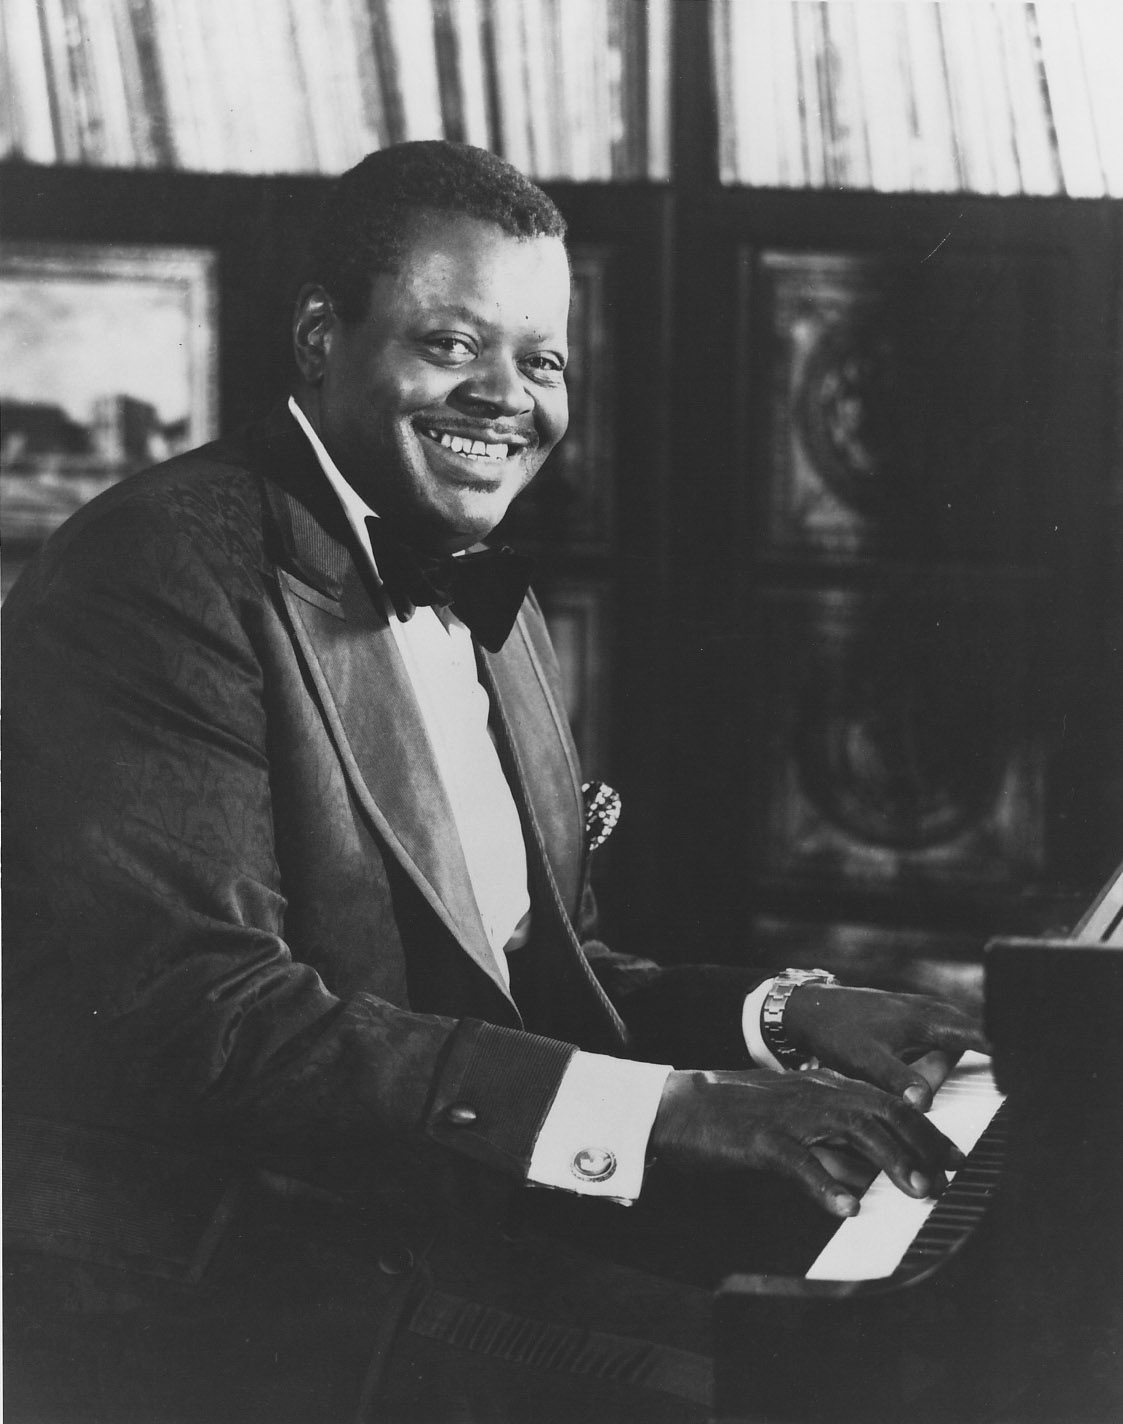 Musical Genuis Derrick Higgins furthermore OscarPeterson also Oscar Peterson besides Spartiti jazz together with Ella Fitzgerald A Favourite Selection. on oscar peterson jazz